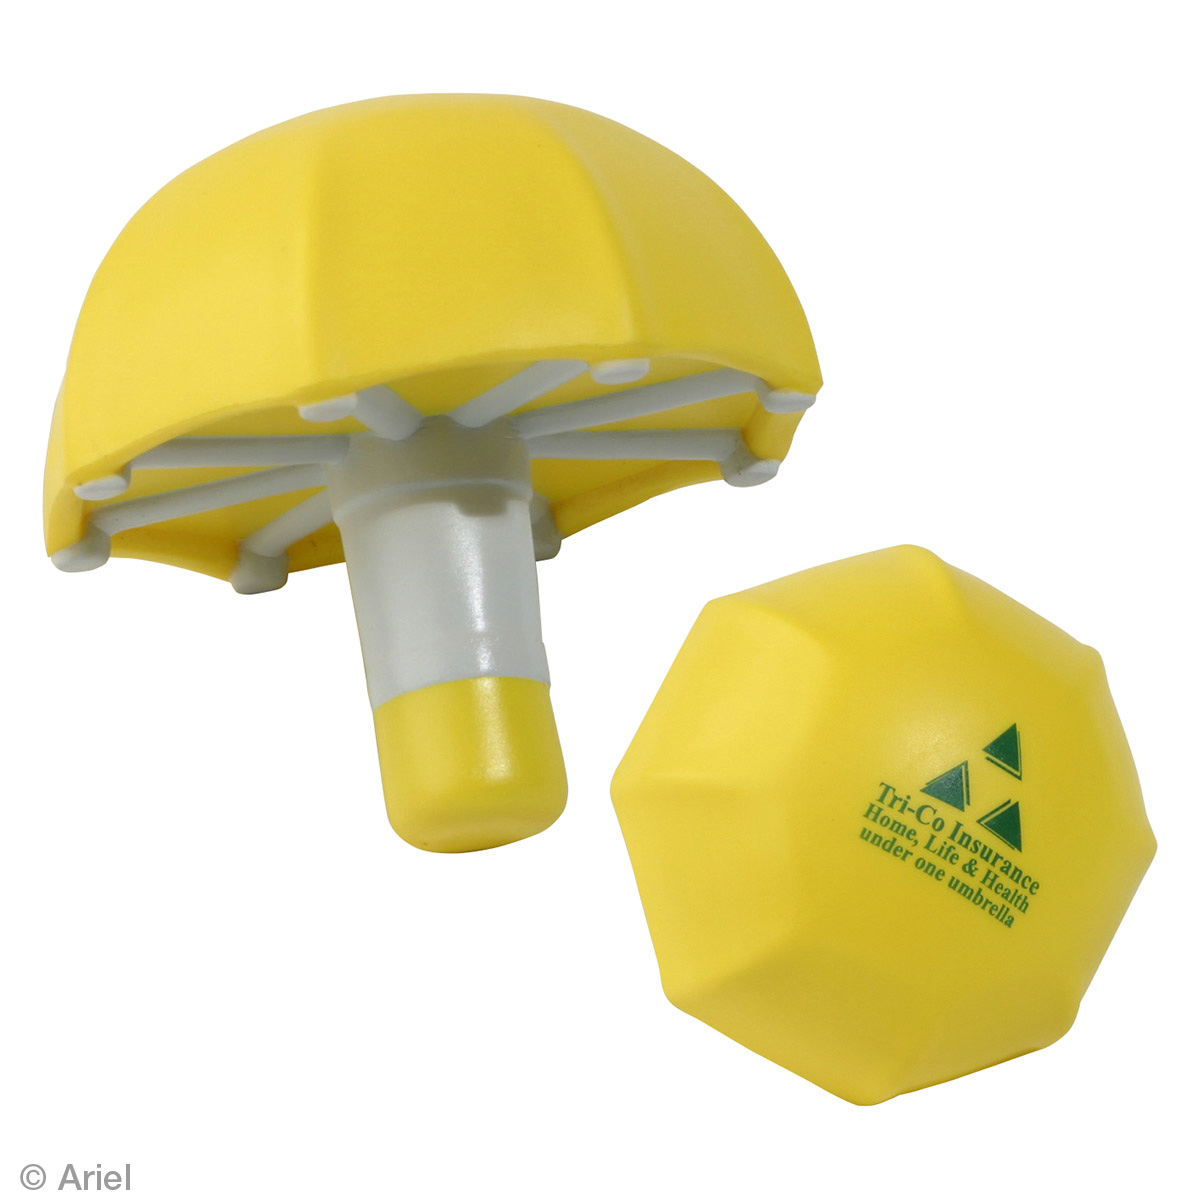 Umbrella Stress Reliever, LGS-UM01, 1 Colour Imprint